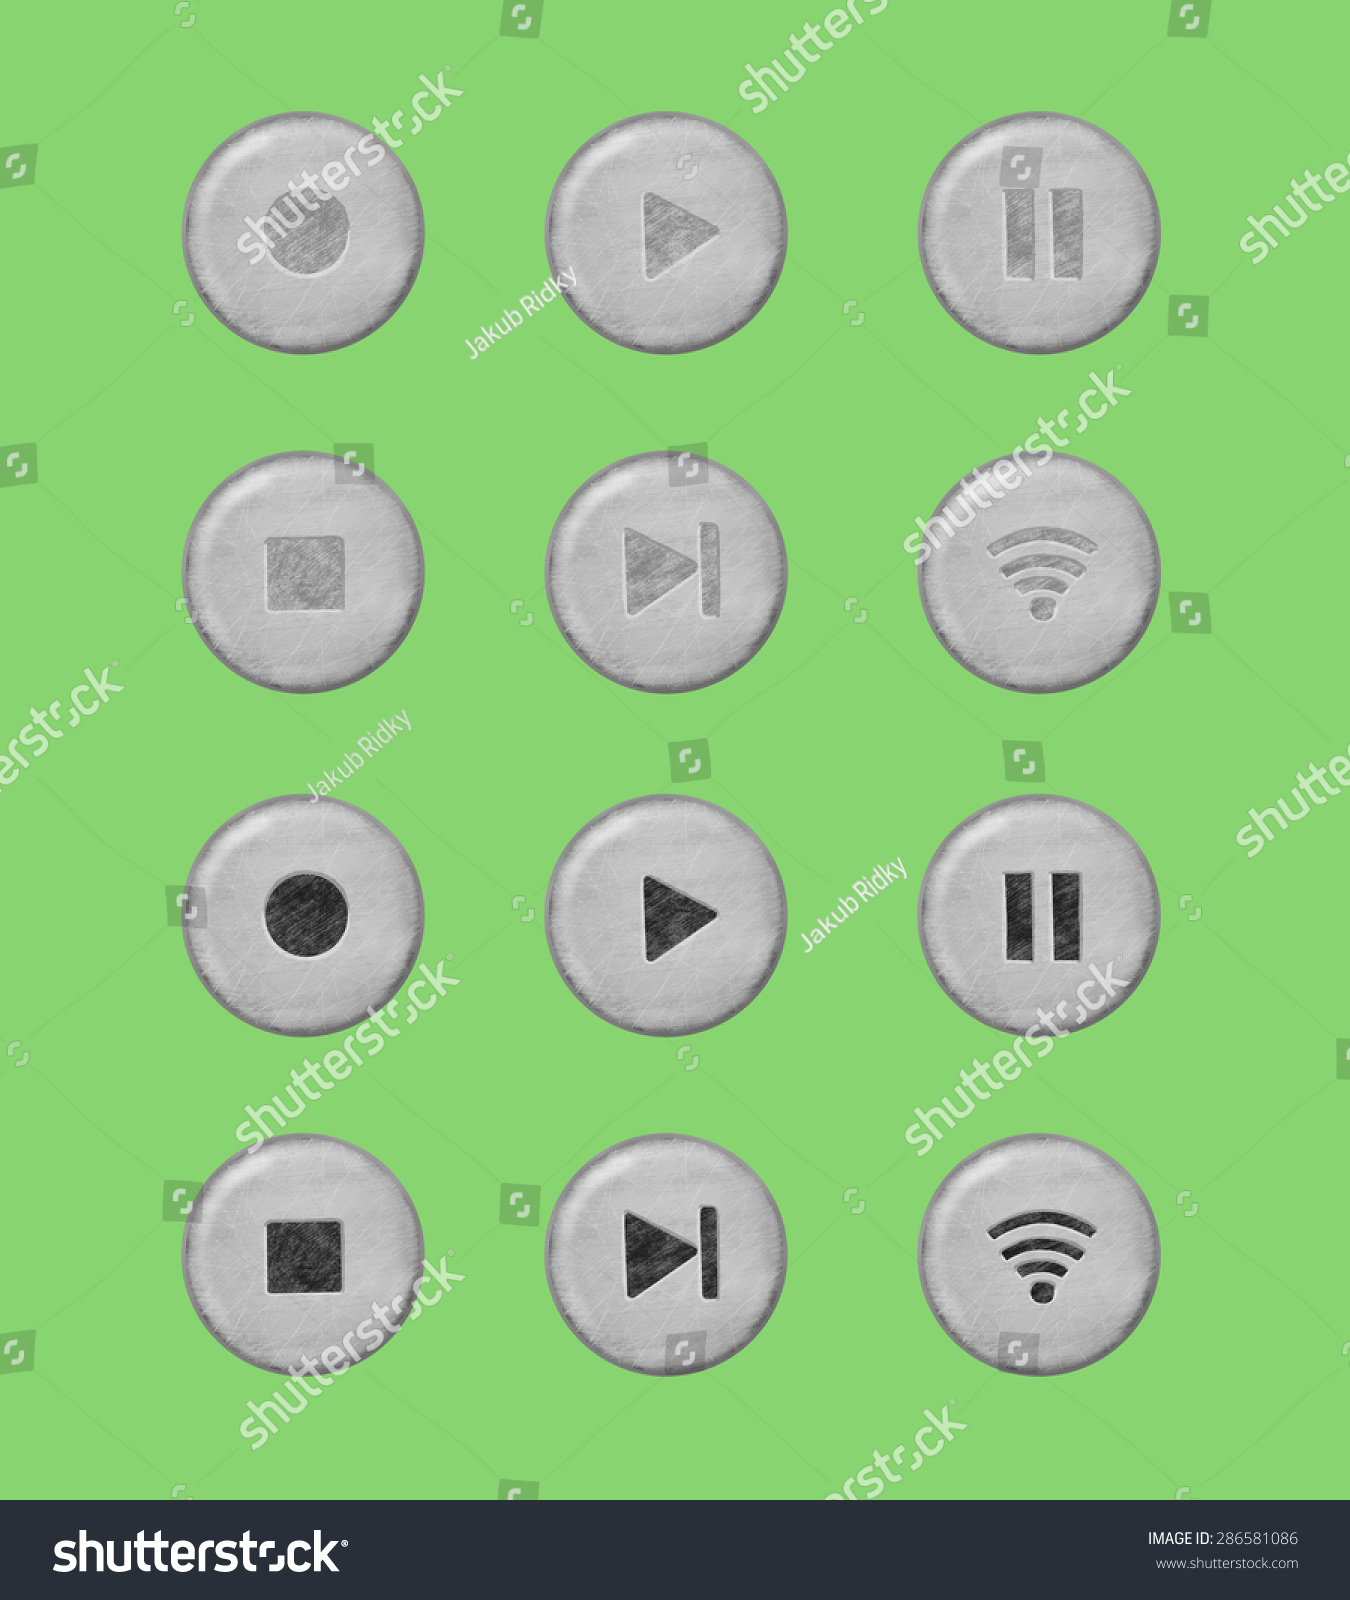 Drawn Raster Image Music Buttons Versions Stock Illustration